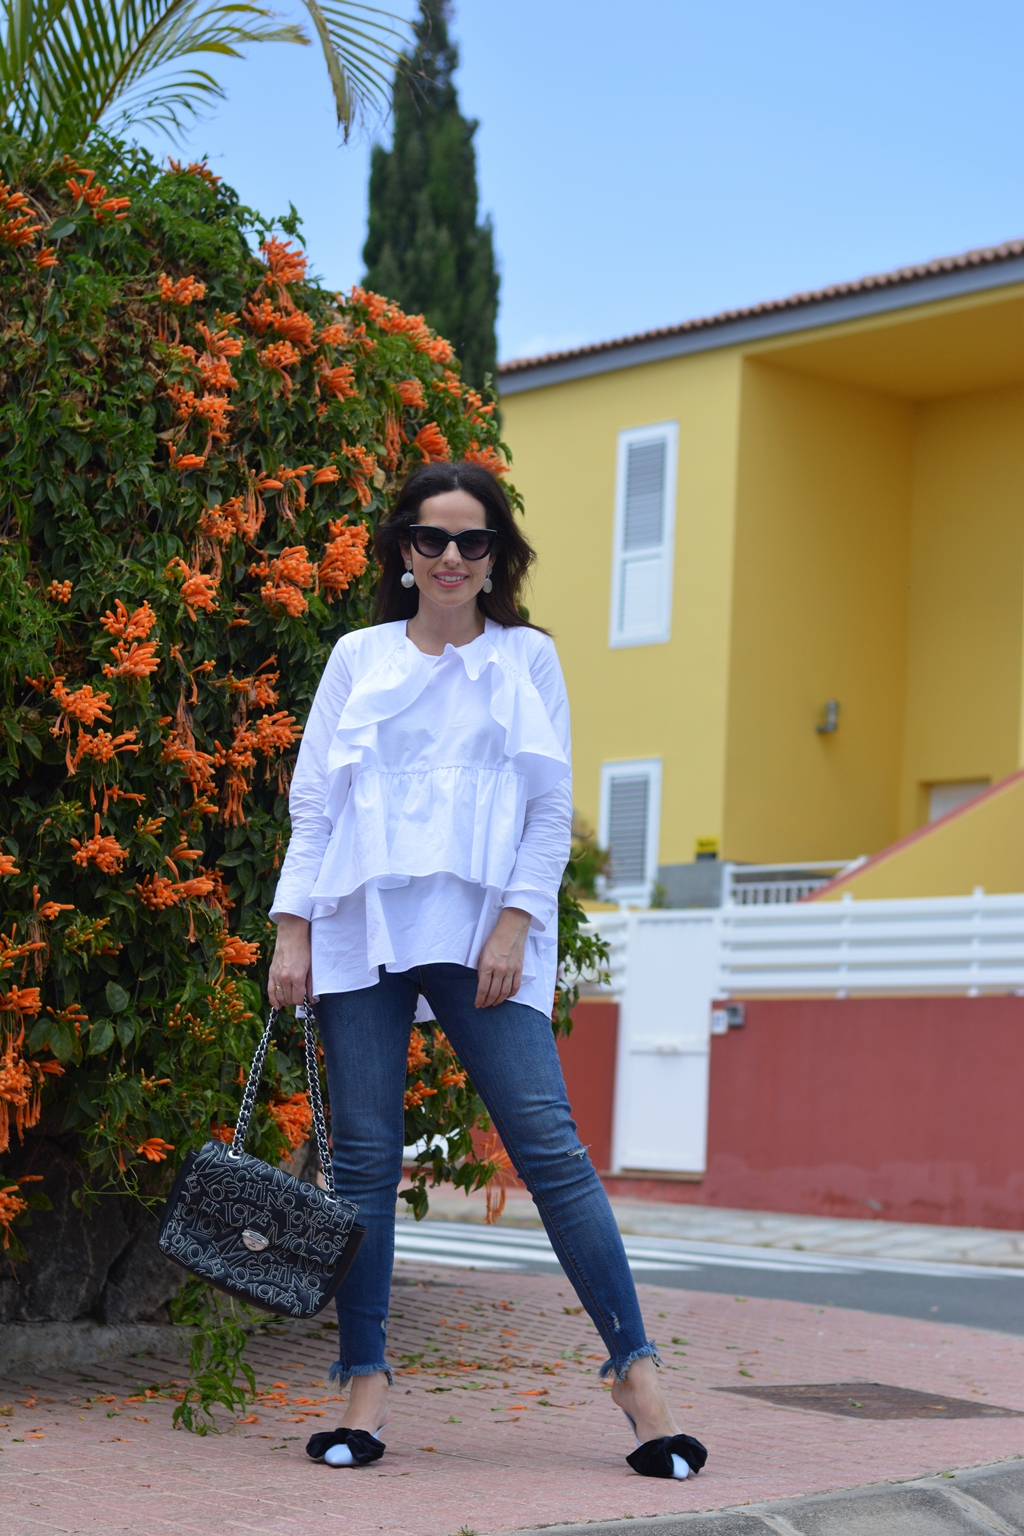 zara-frilled-shirt-jeans-outfit